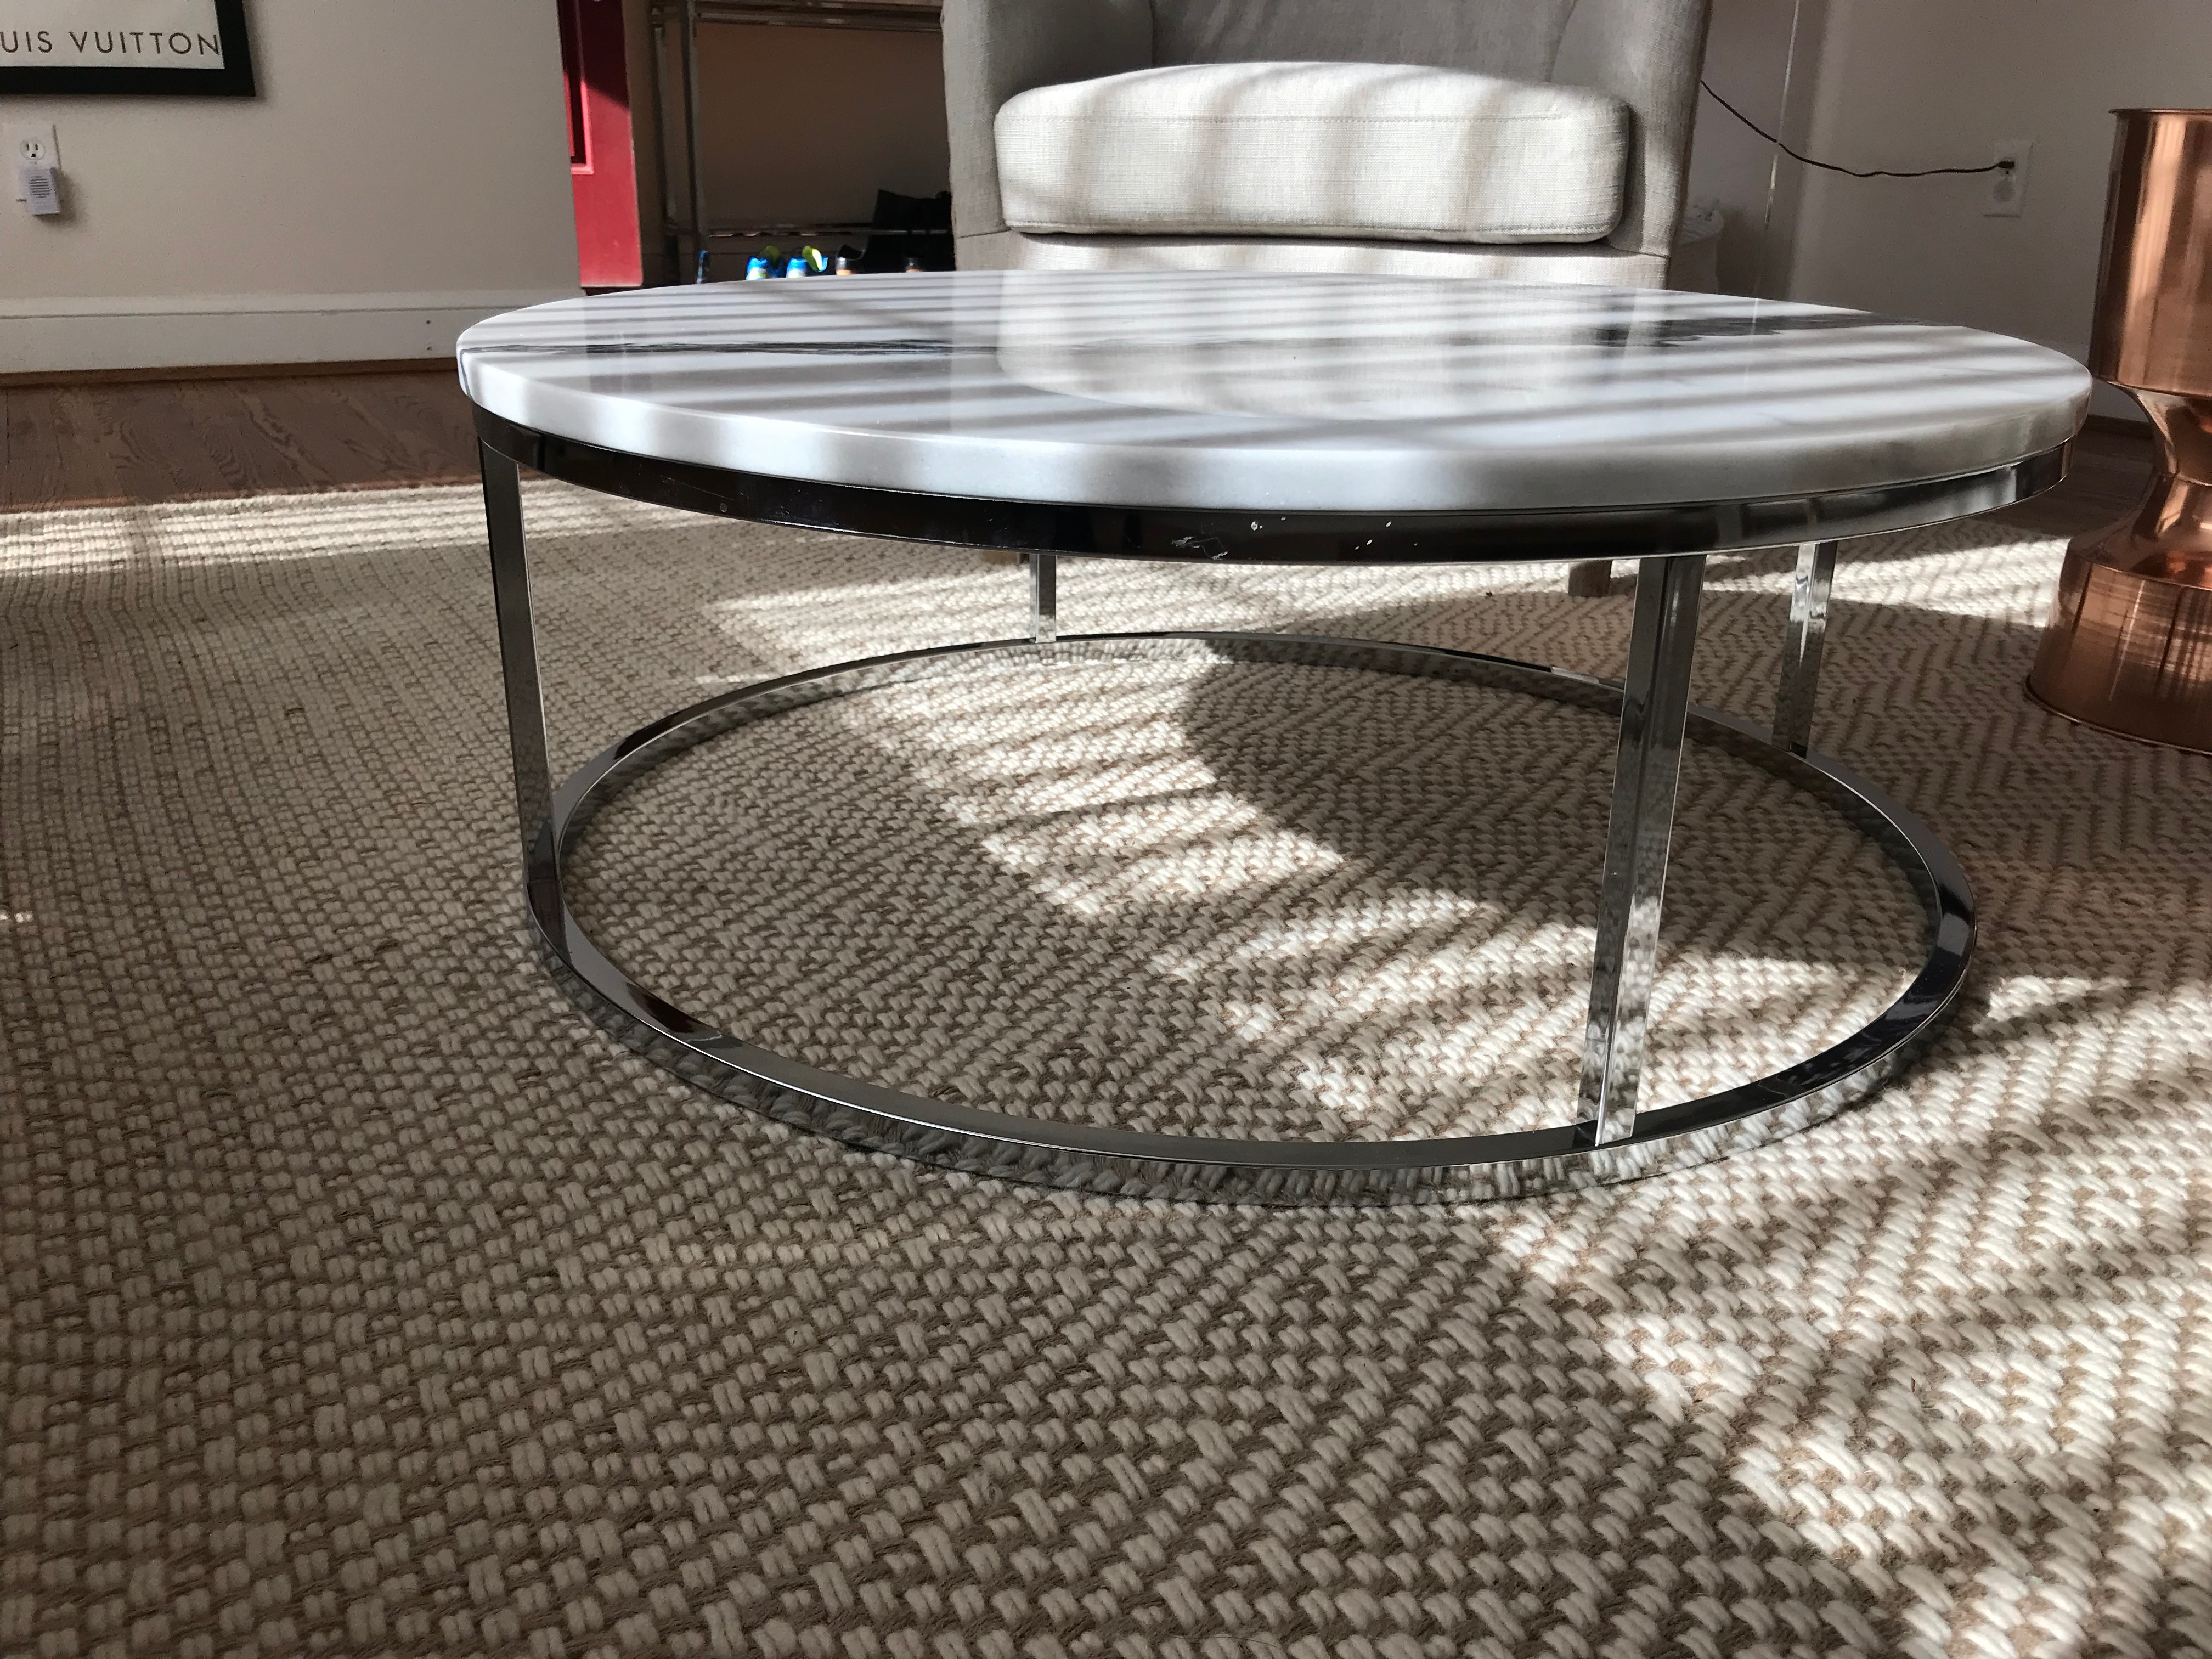 Cb Marble Coffee Table Slab White Marble Coffee Table Reviews - Cb2 round marble table